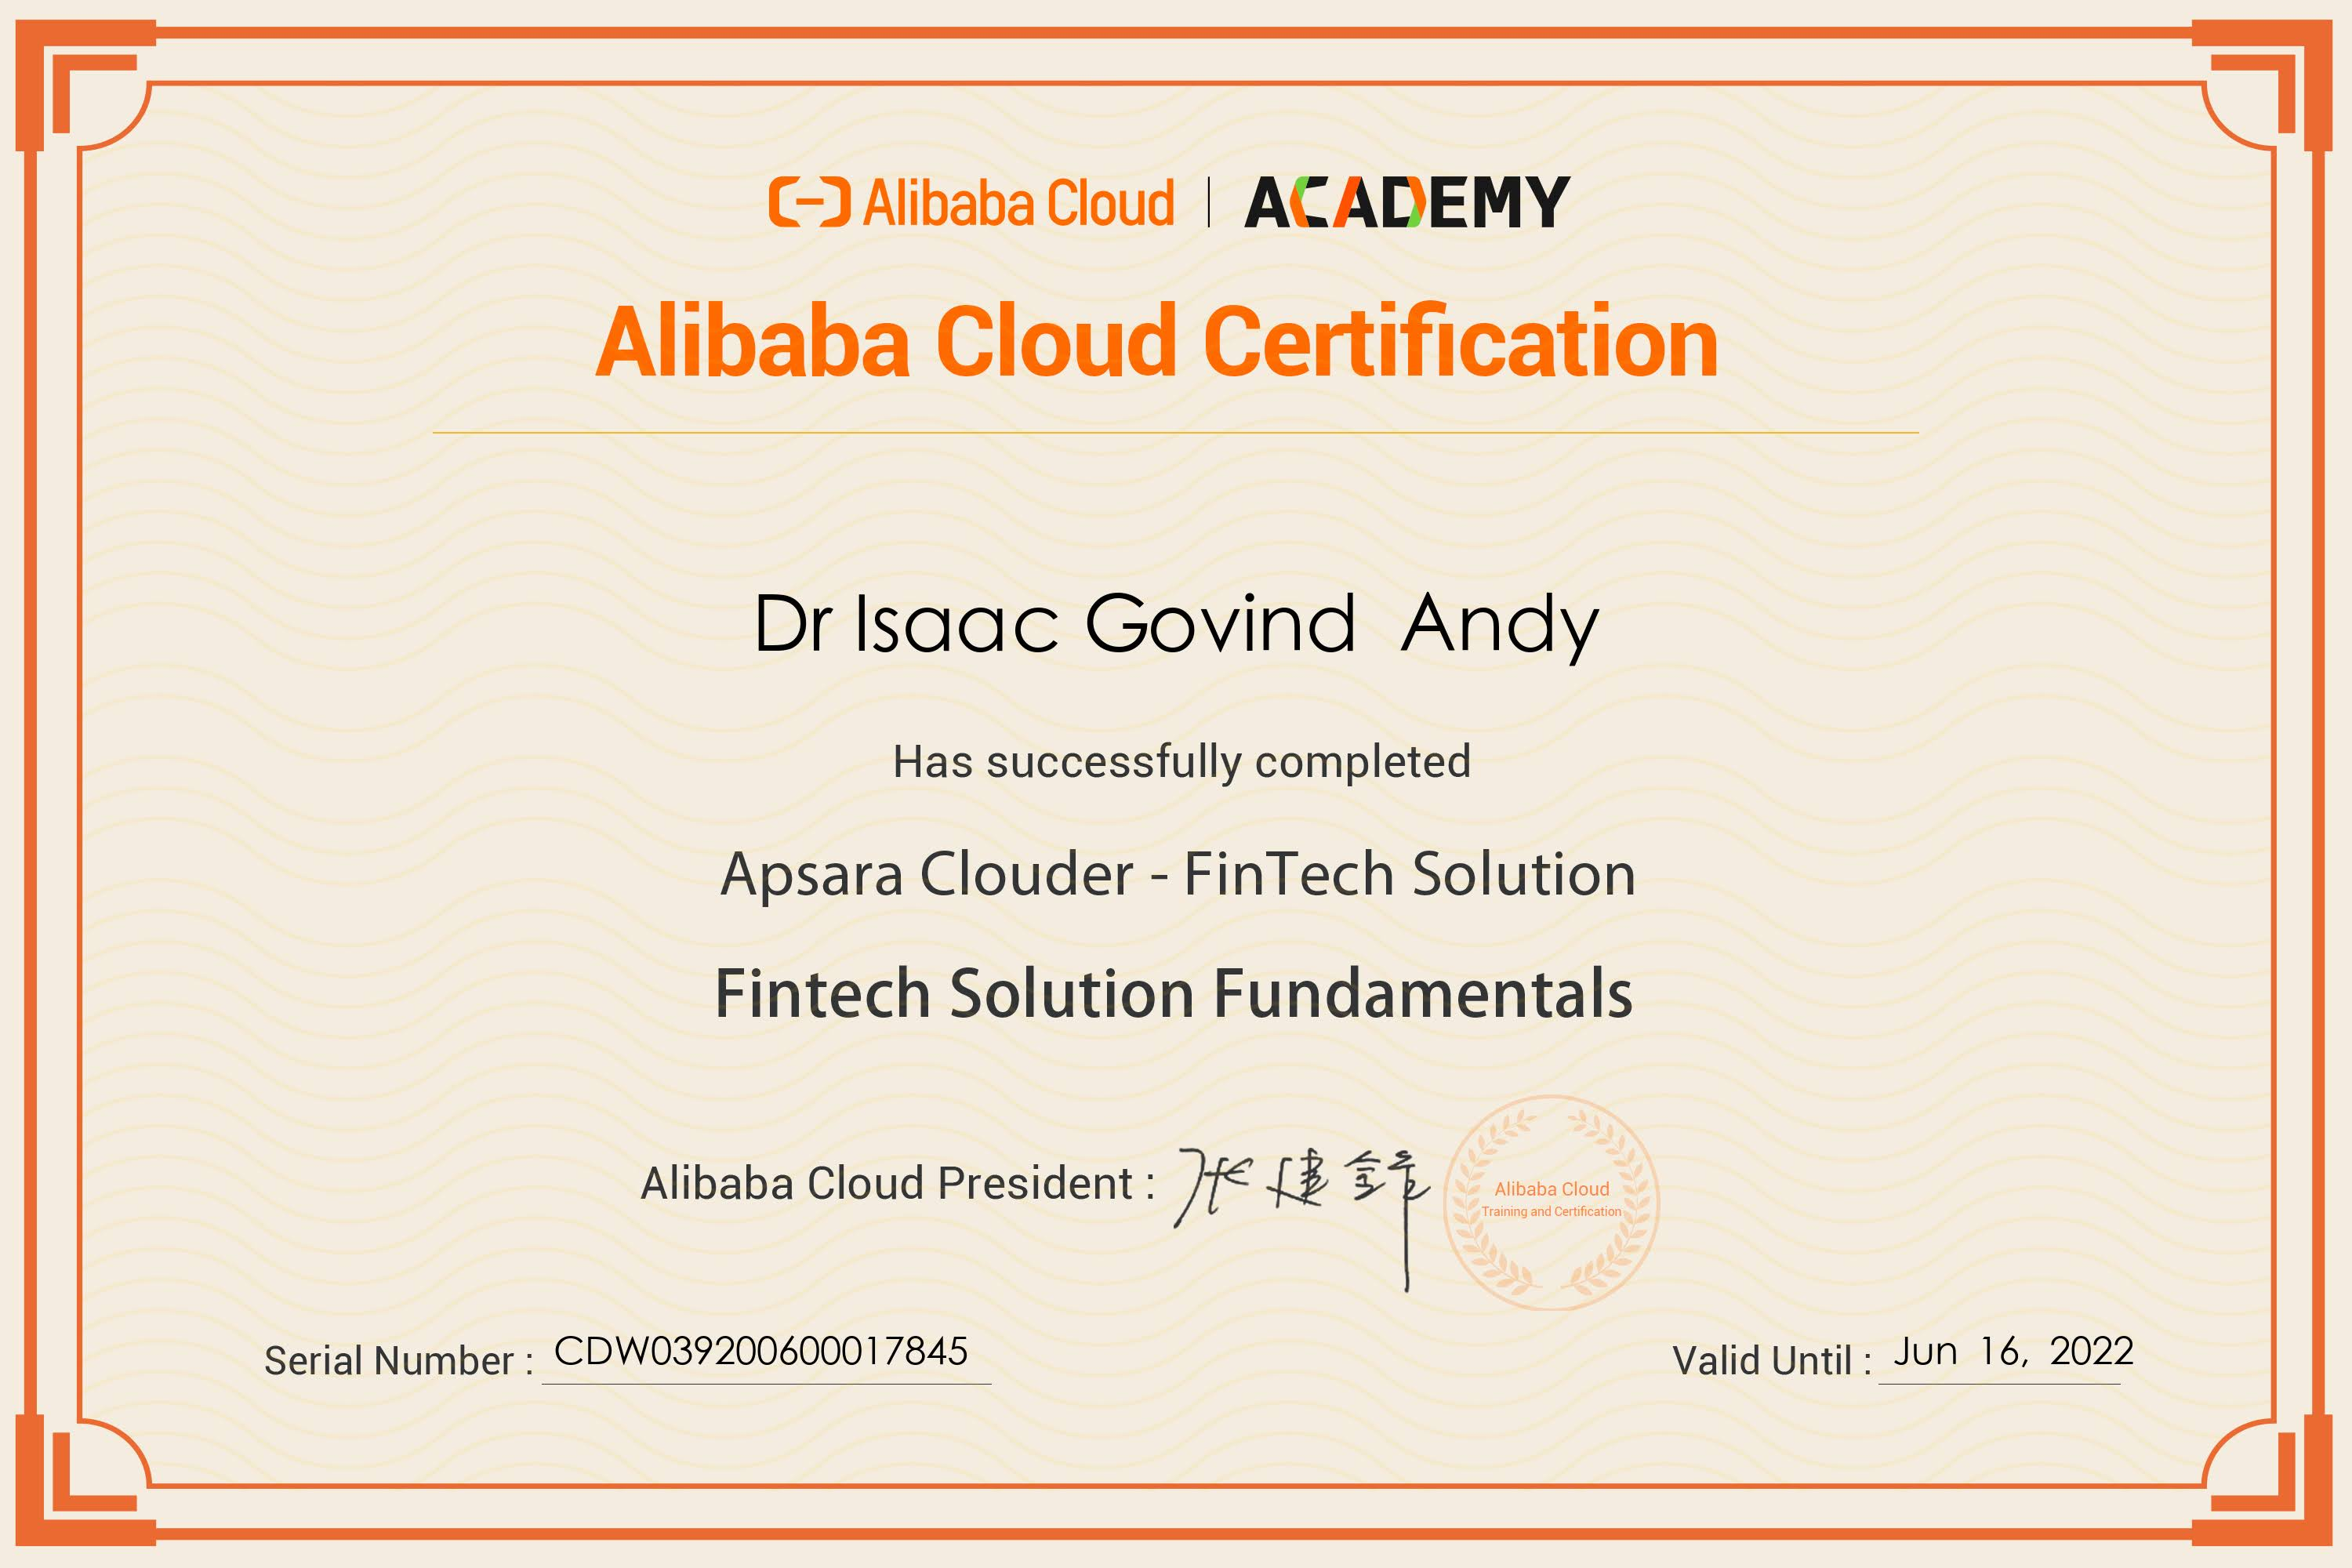 Fintech Solution Fundamentals Completion Certificate